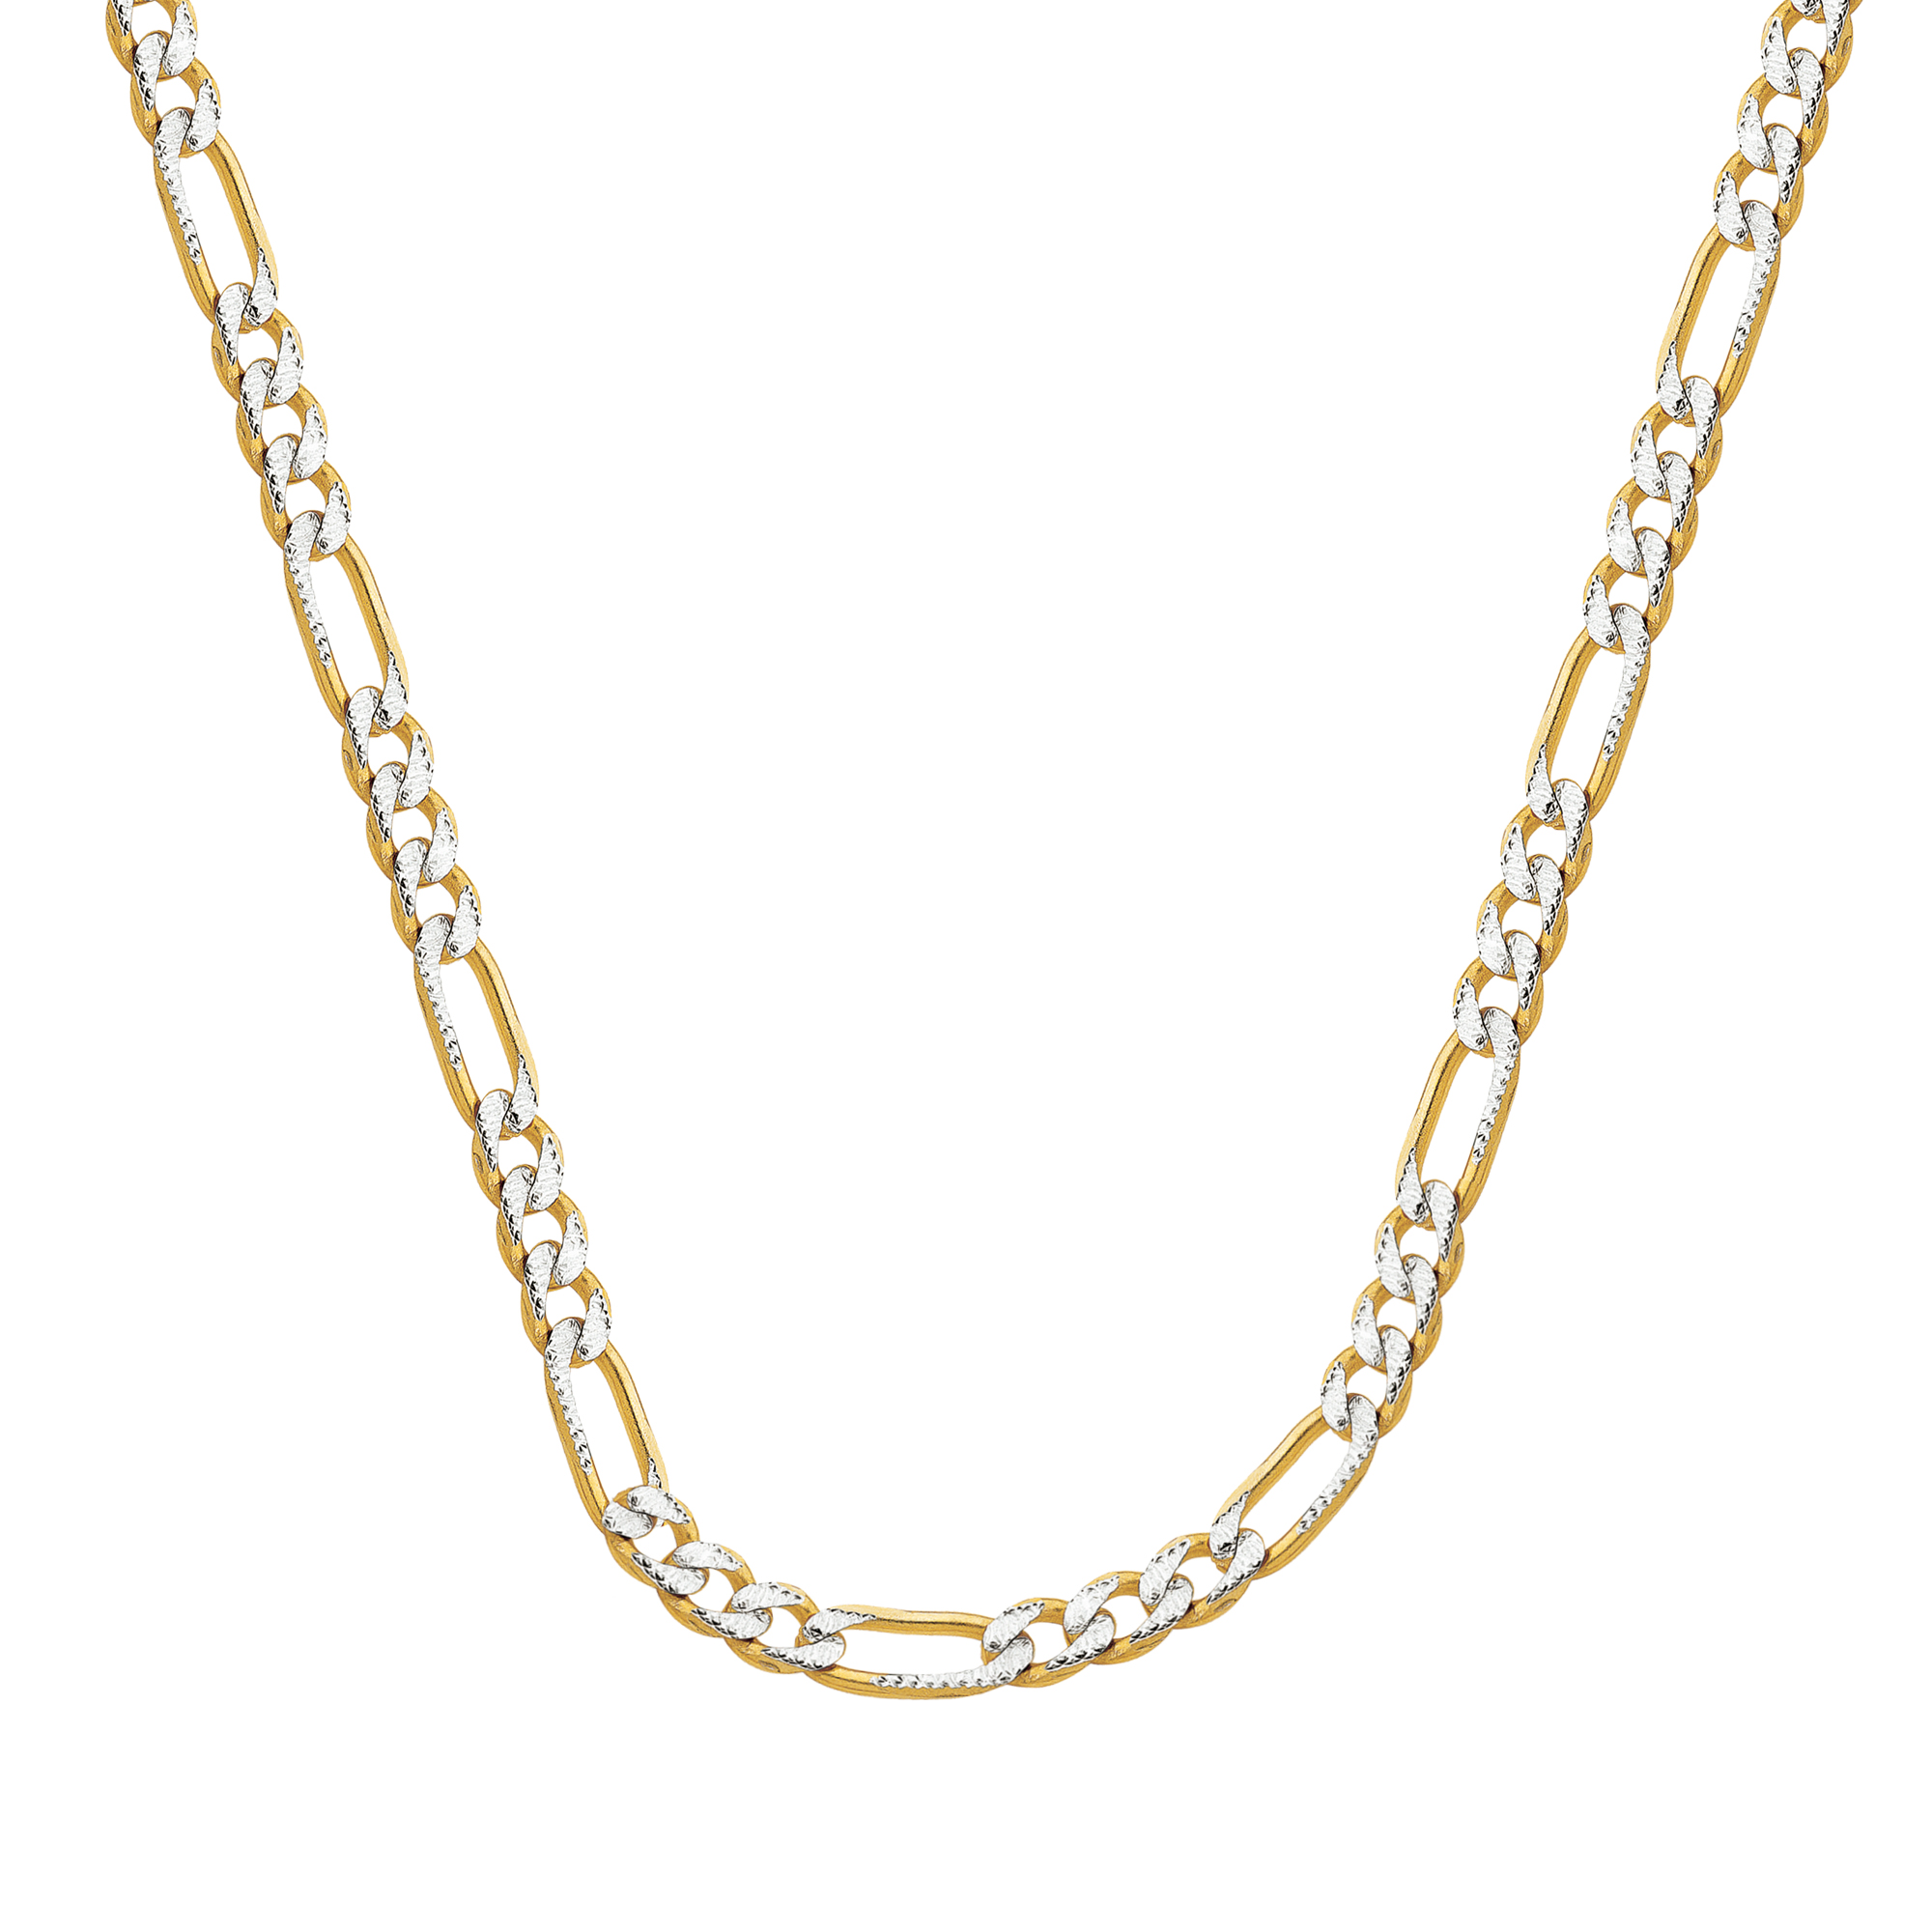 Figaro Chain , 14Kt Gold  Figaro Chain With Lobster Lock / 24